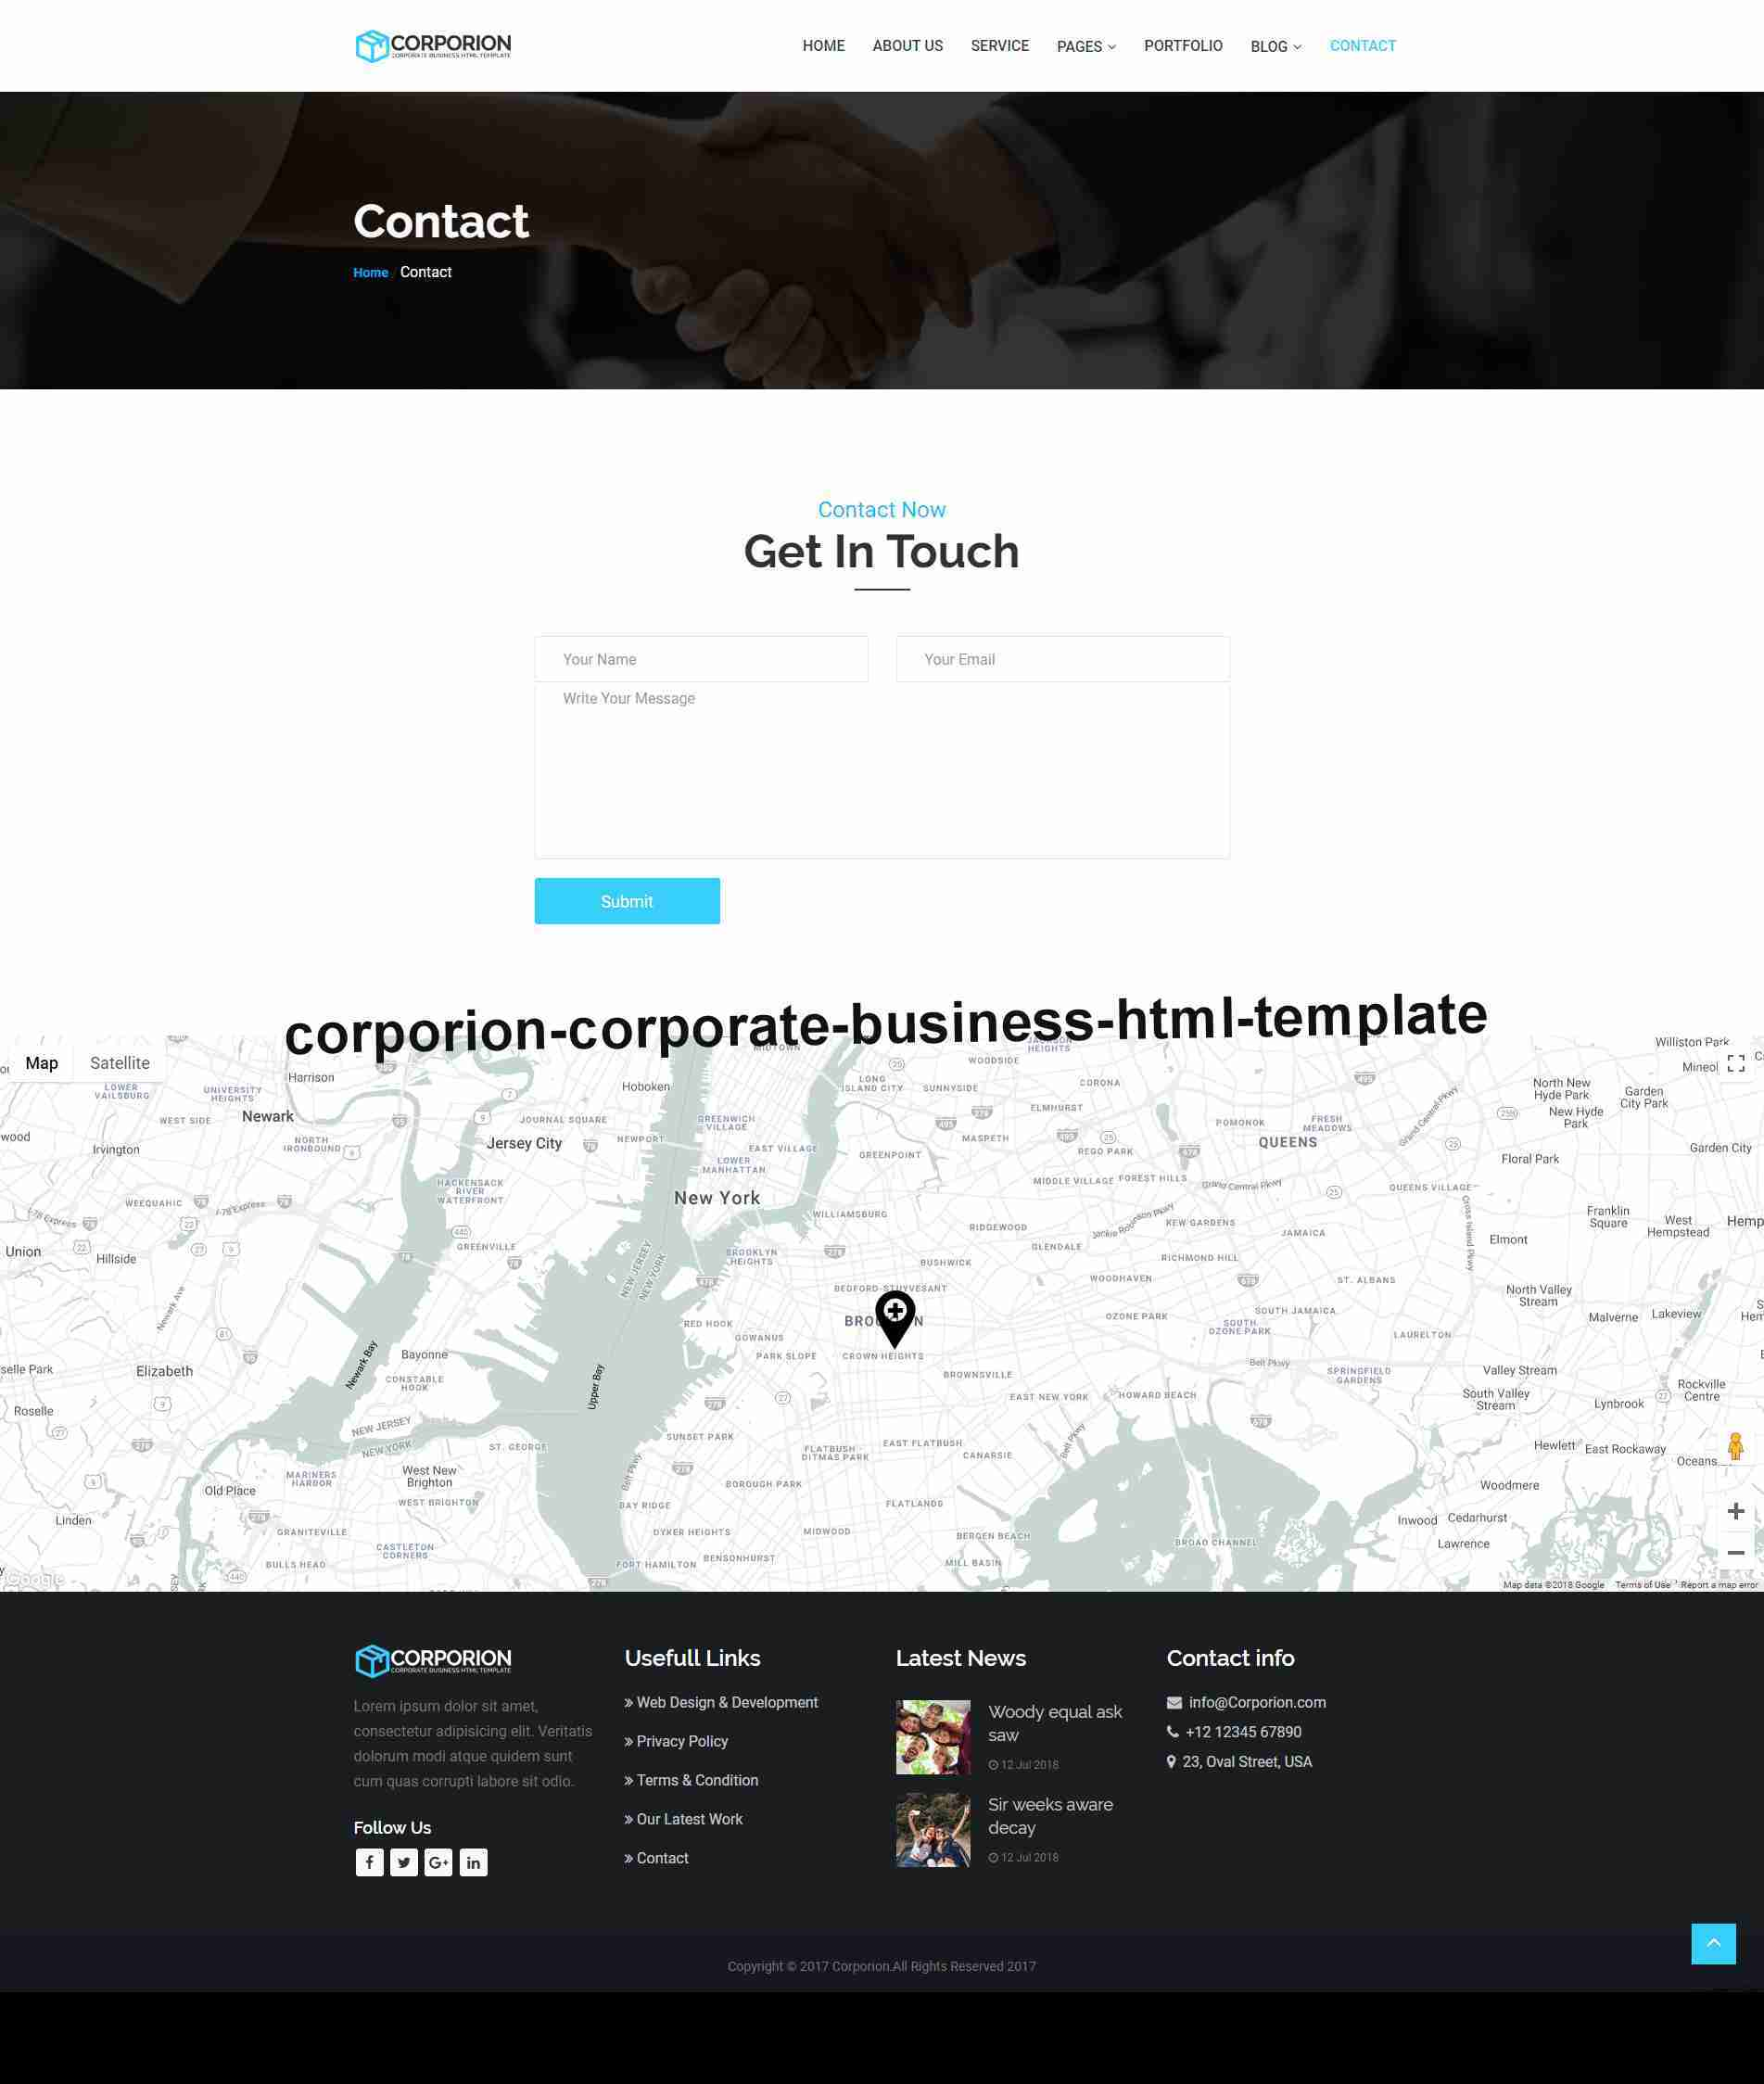 https://images.besthemes.com/images/h1_corporion-corporate-business-html-template12-_-253136968/11_contact.png